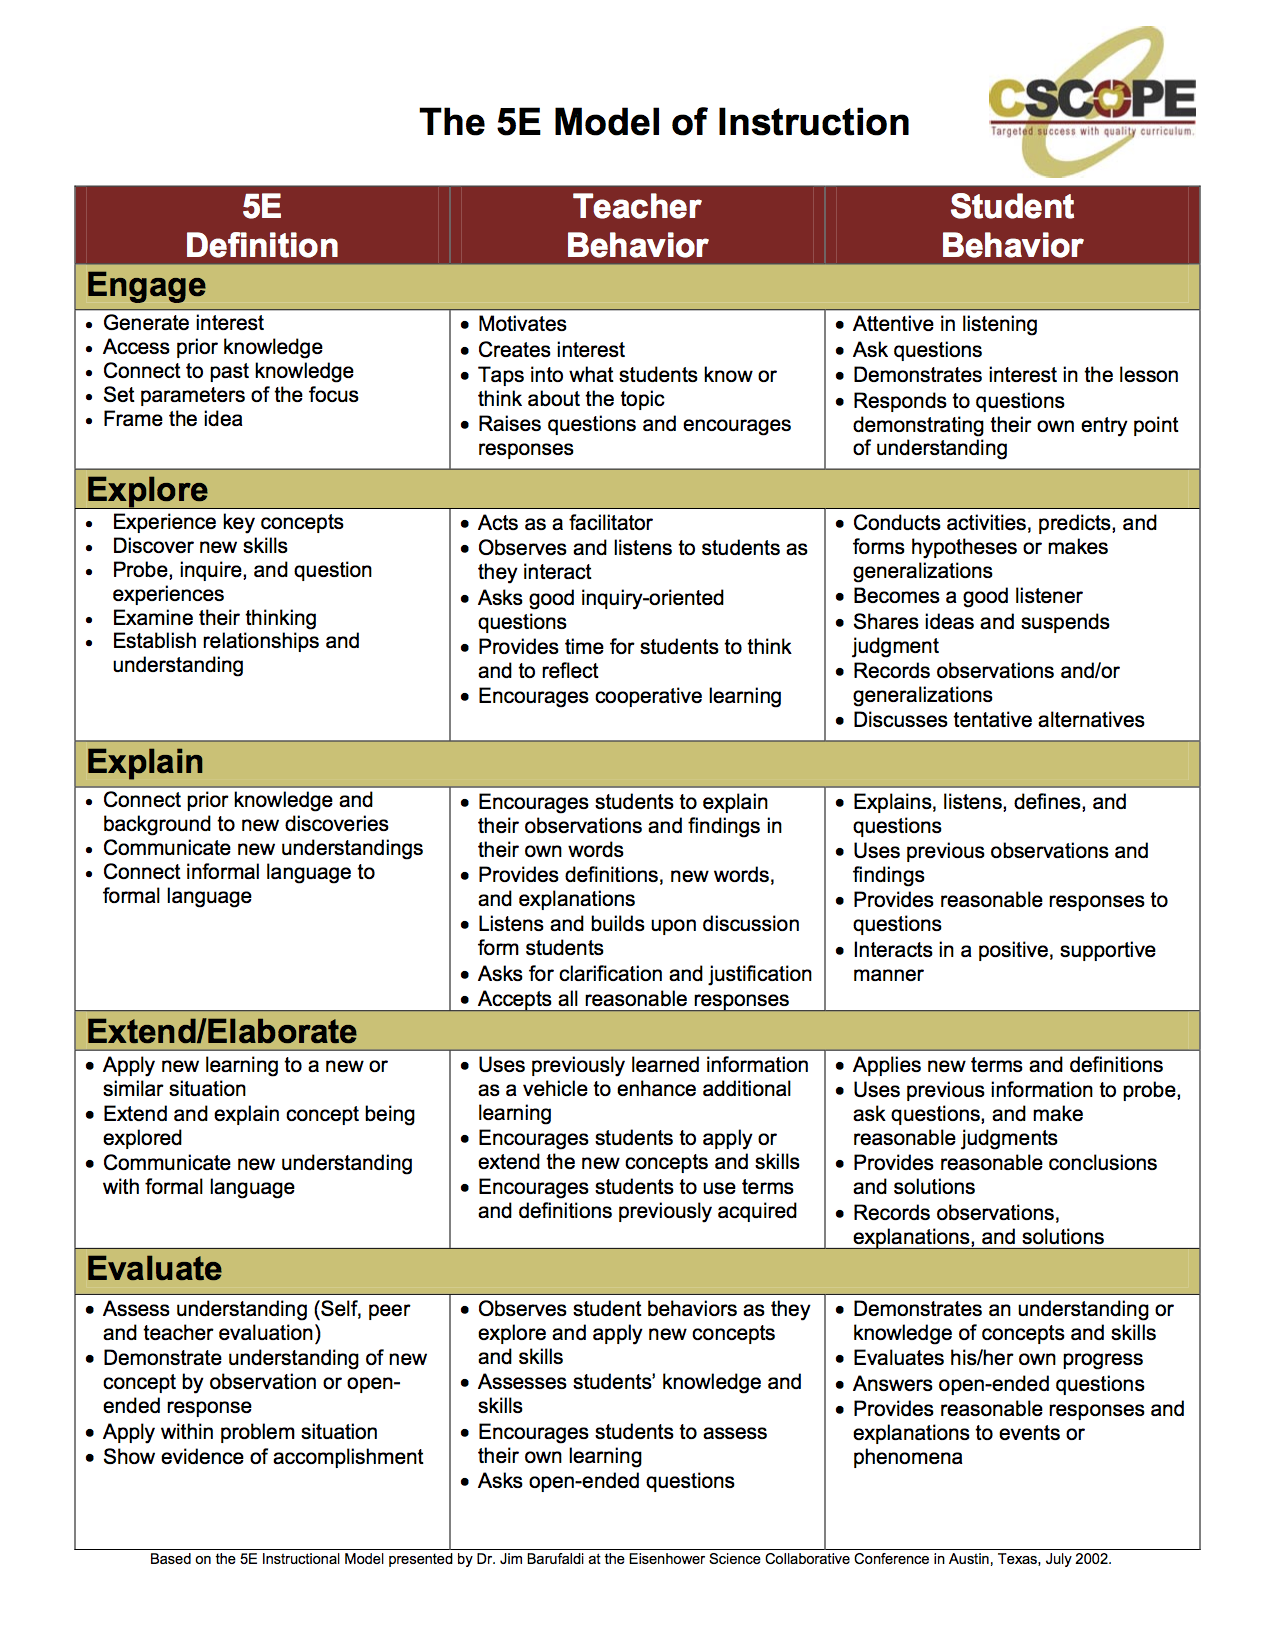 E Model Different Roles For The Teacher And Student Compared To